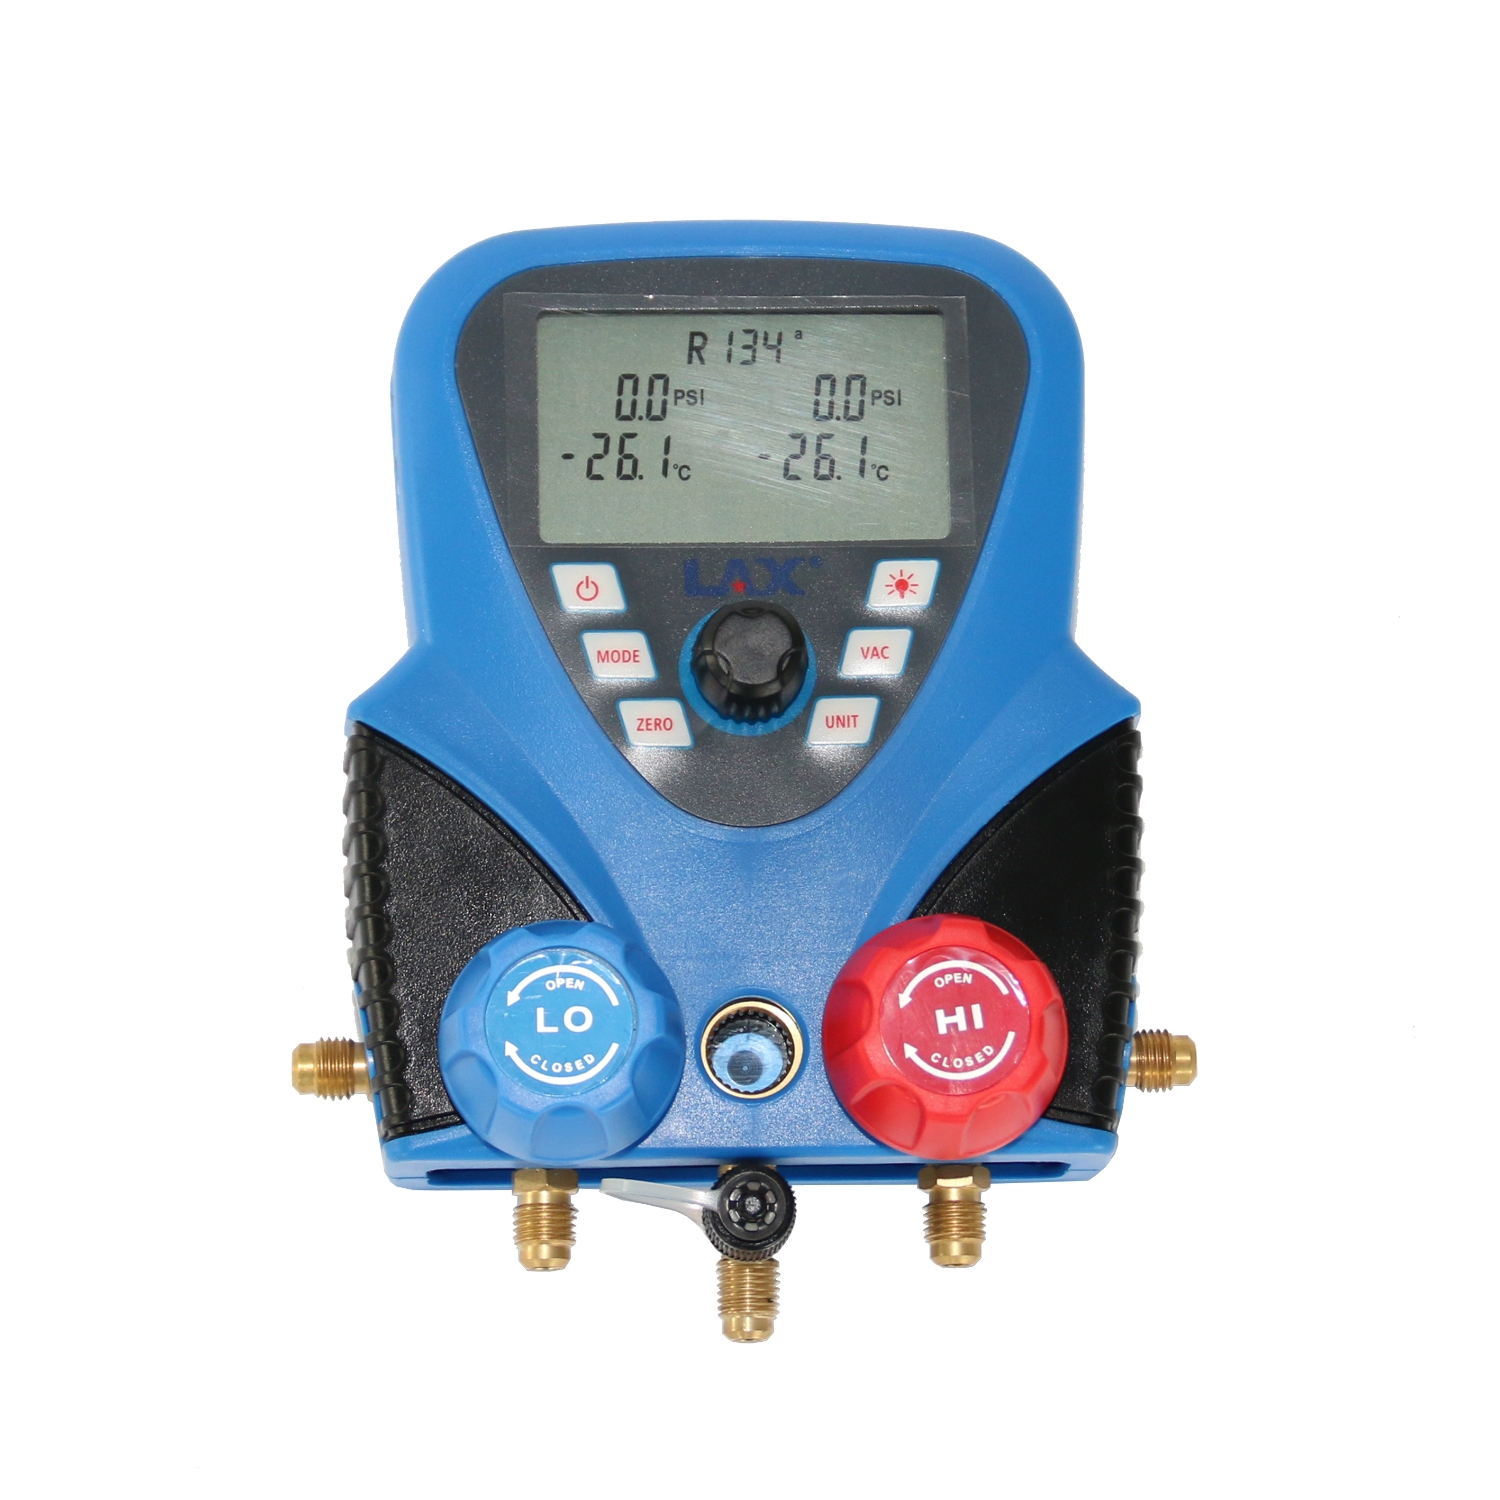 Electrical Wire Gauge Measuring Tool Digital Manifold: Refrigeration Air Conditioning AC Digital Diagnostic